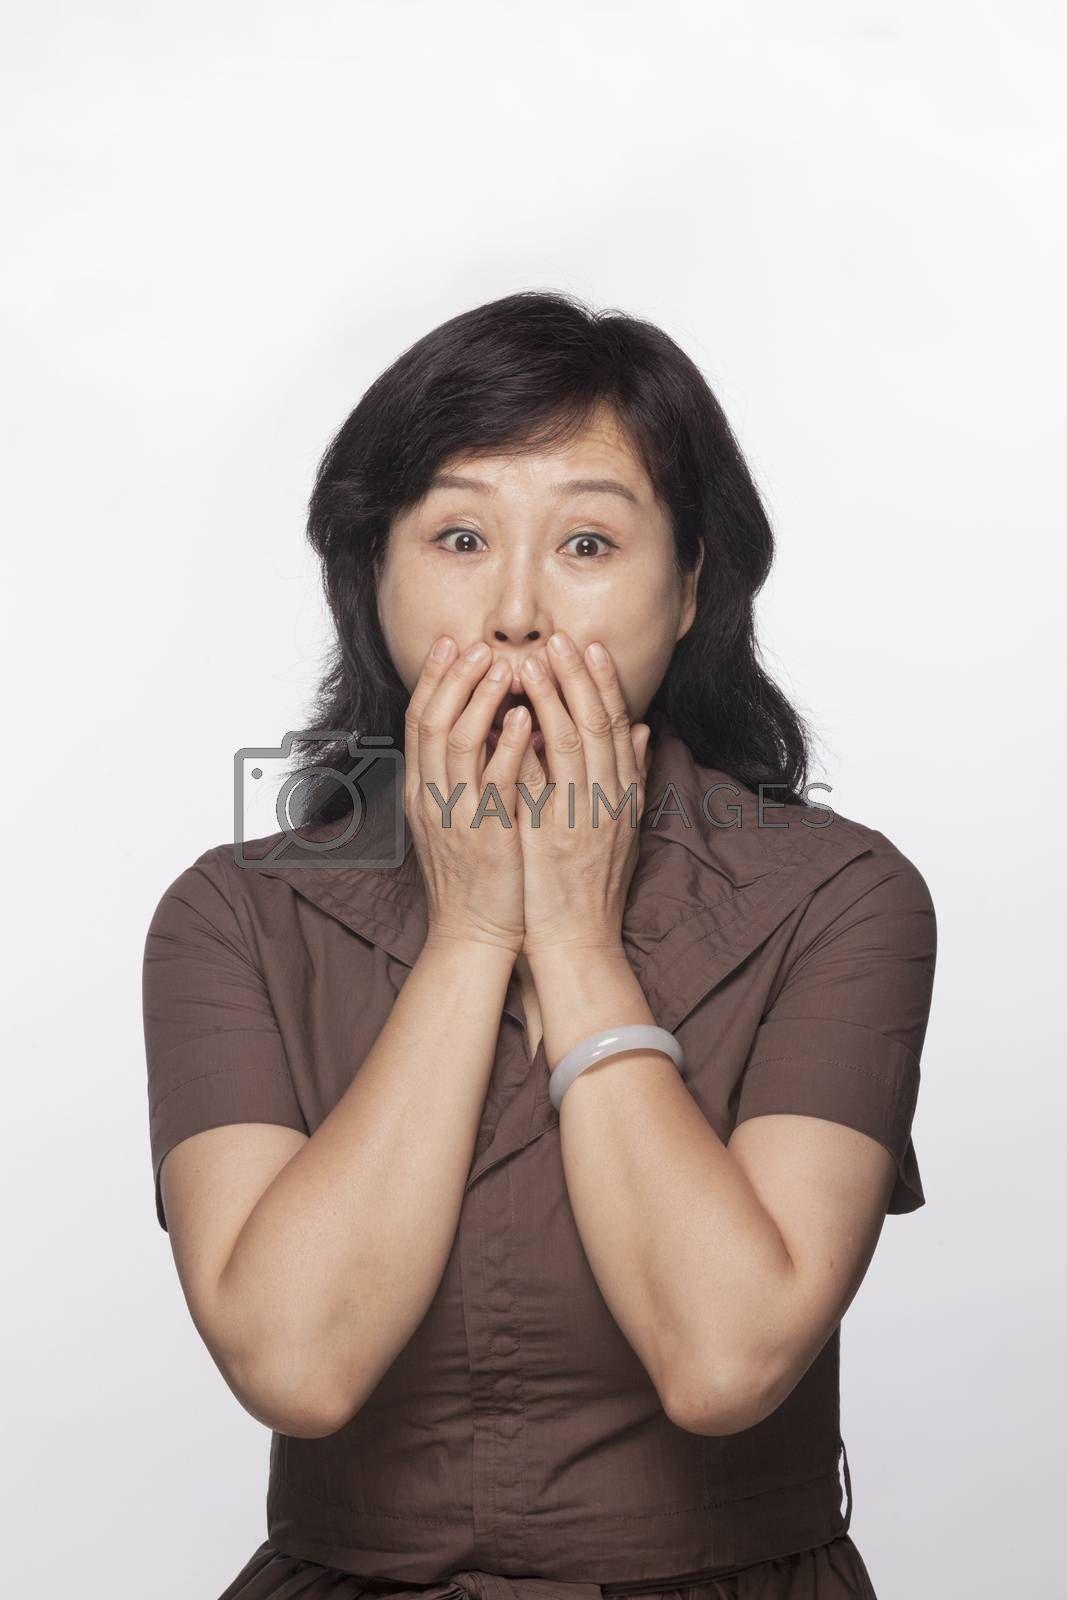 Portrait of shocked and surprised woman with hands covering her mouth, studio shot